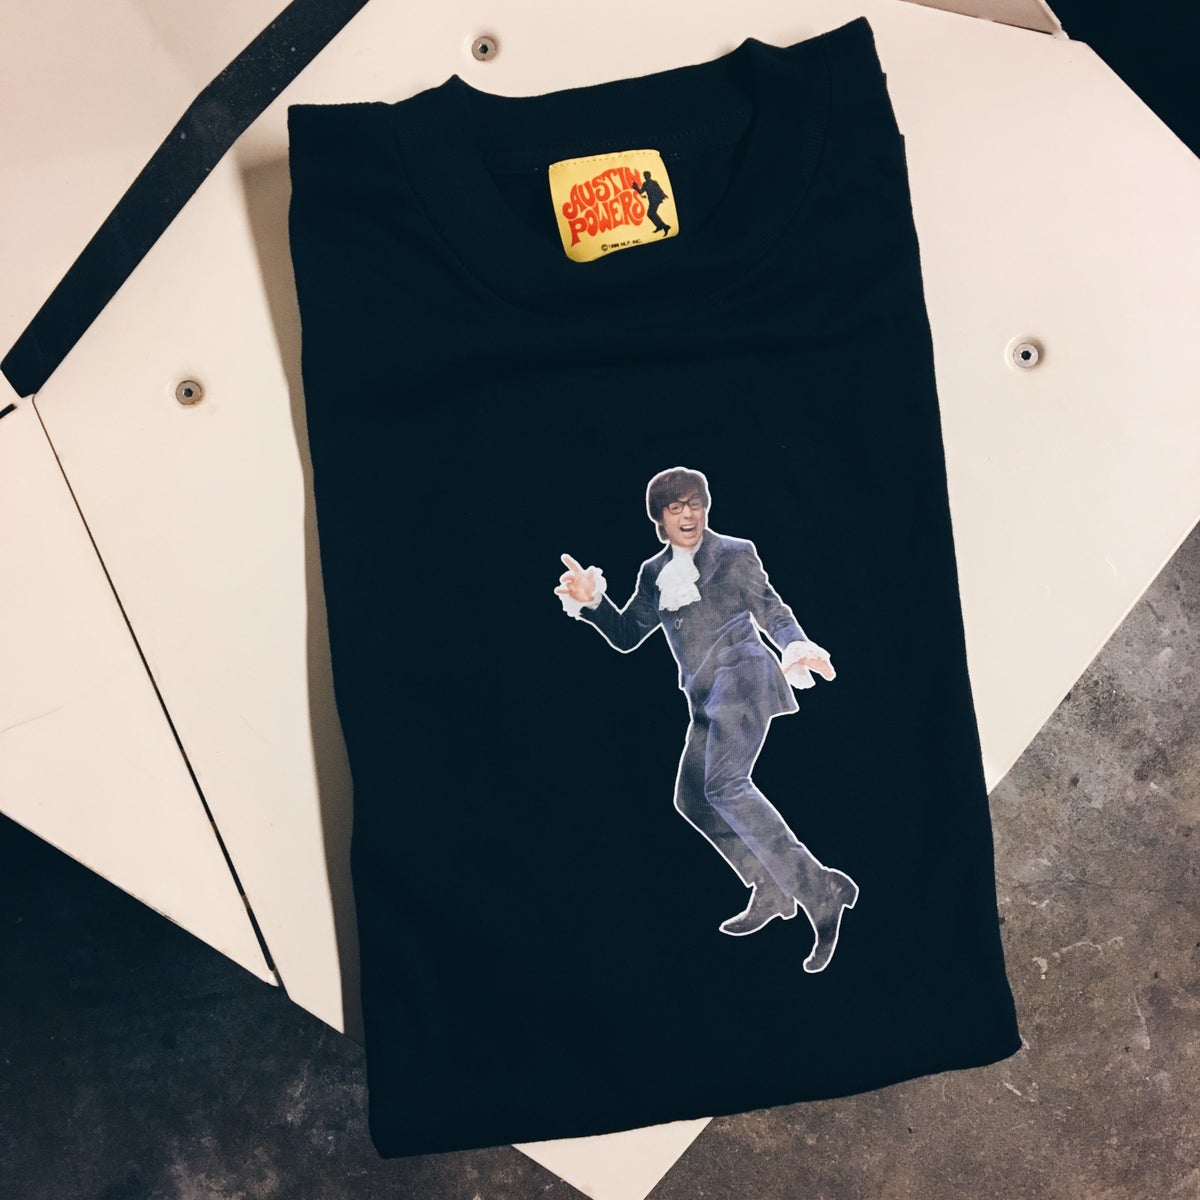 Image of Original 1999 Austin Powers Tee.